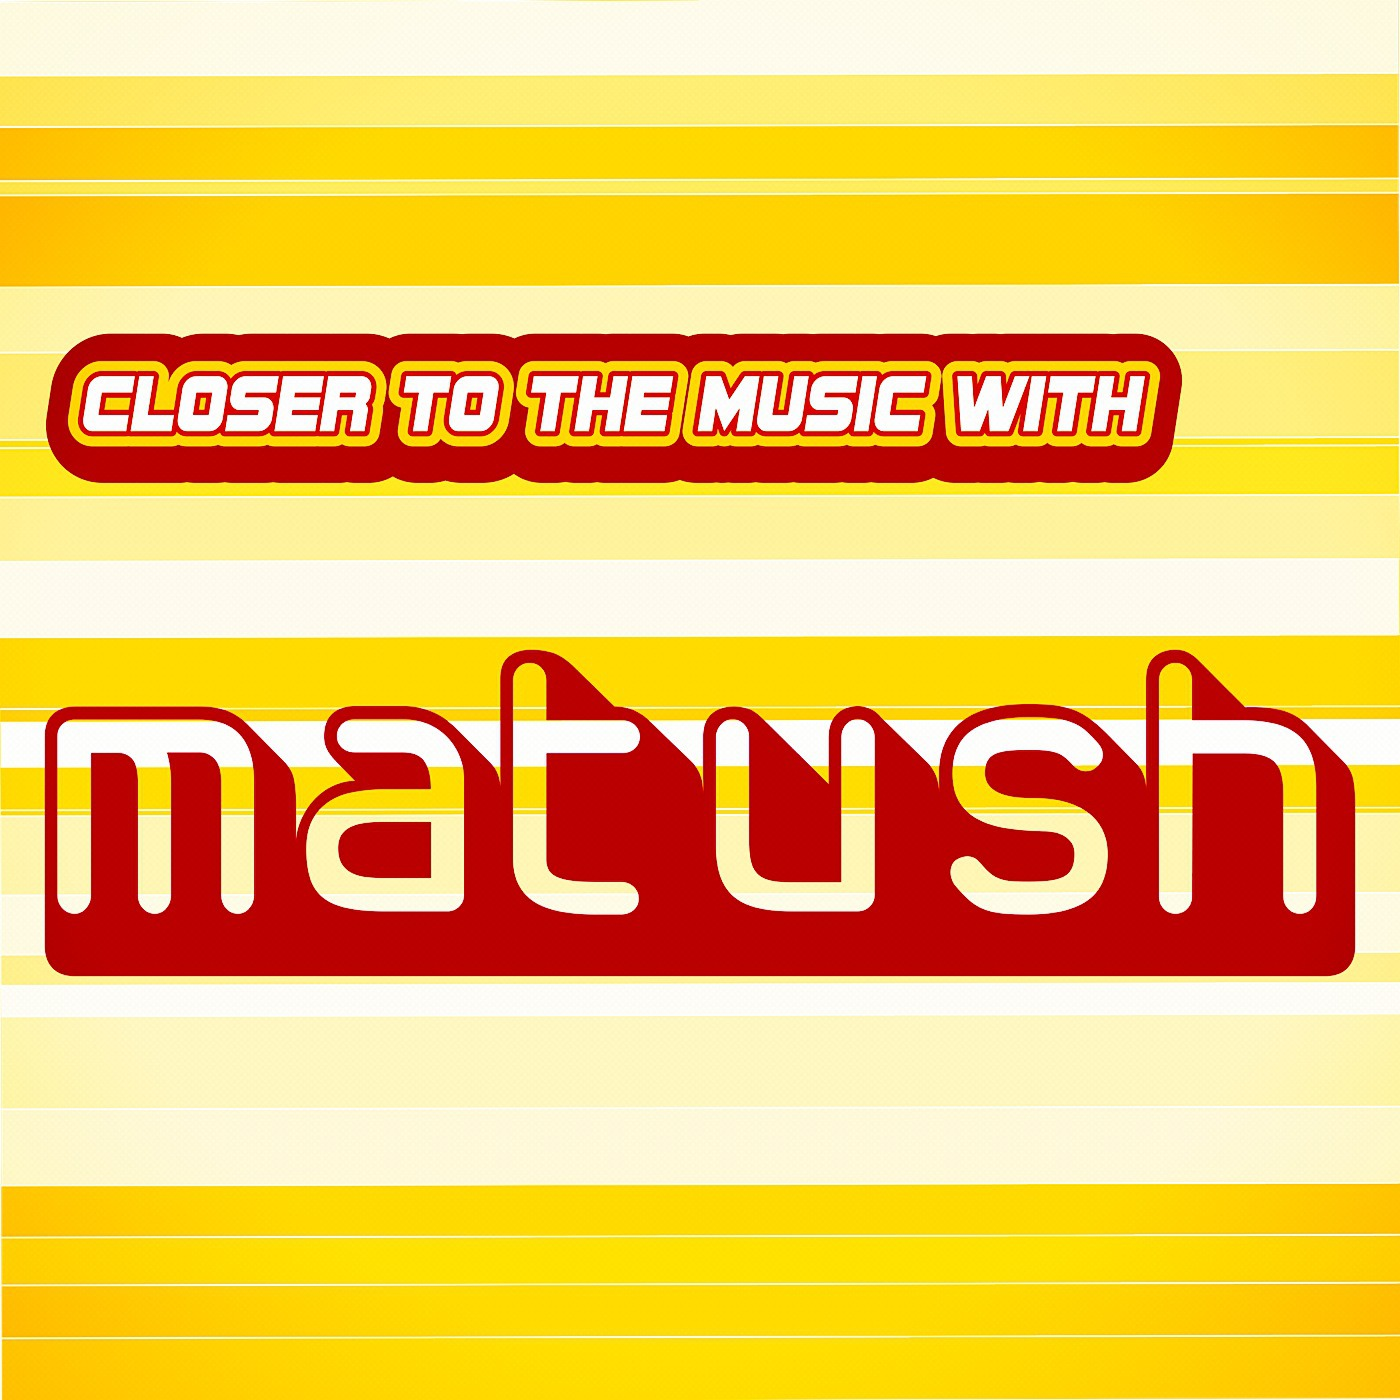 Closer to the music with Matush